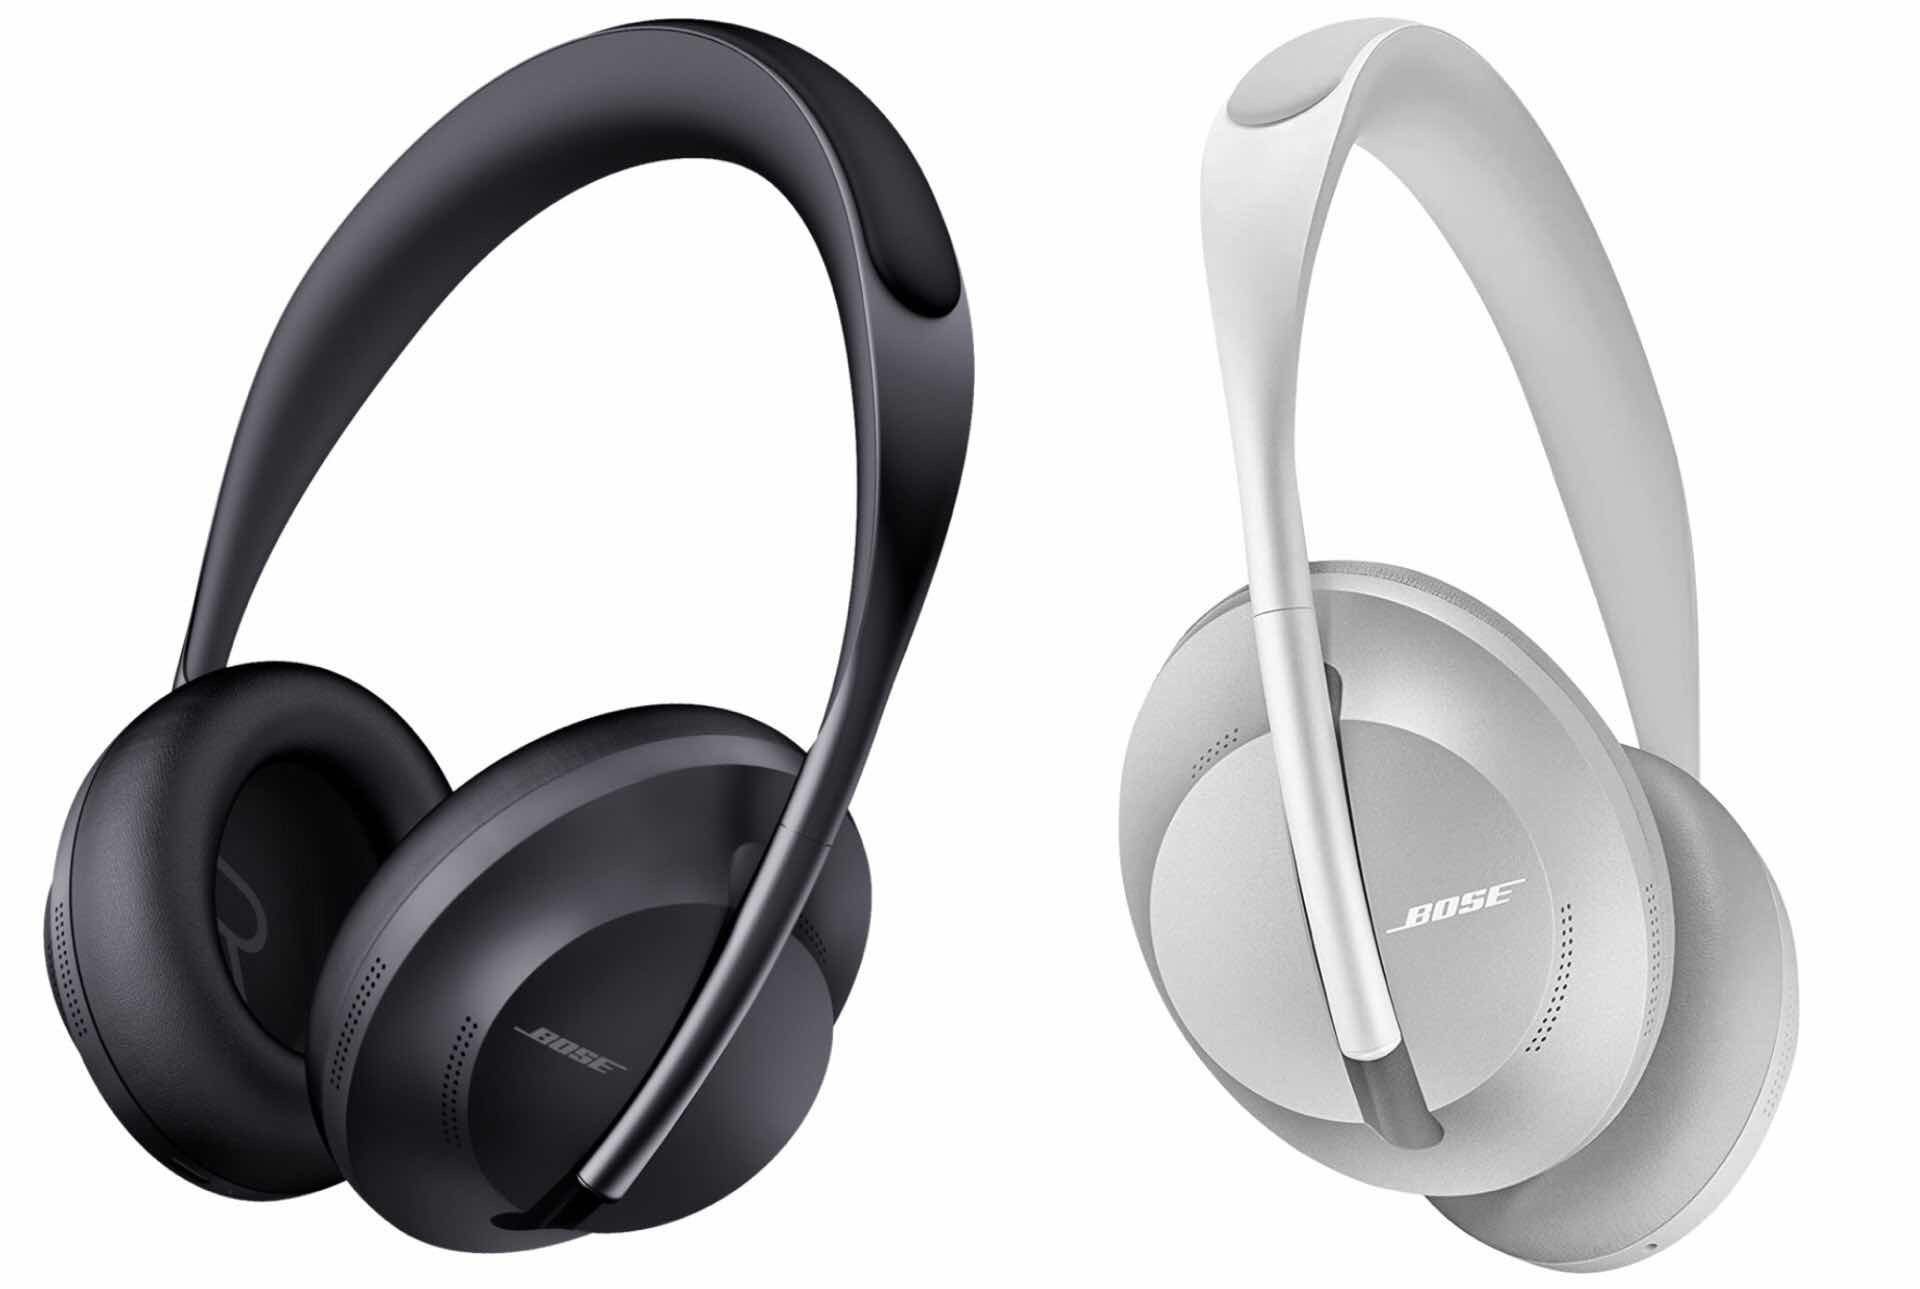 Bose's Noise-Cancelling Headphones 700 ($399)